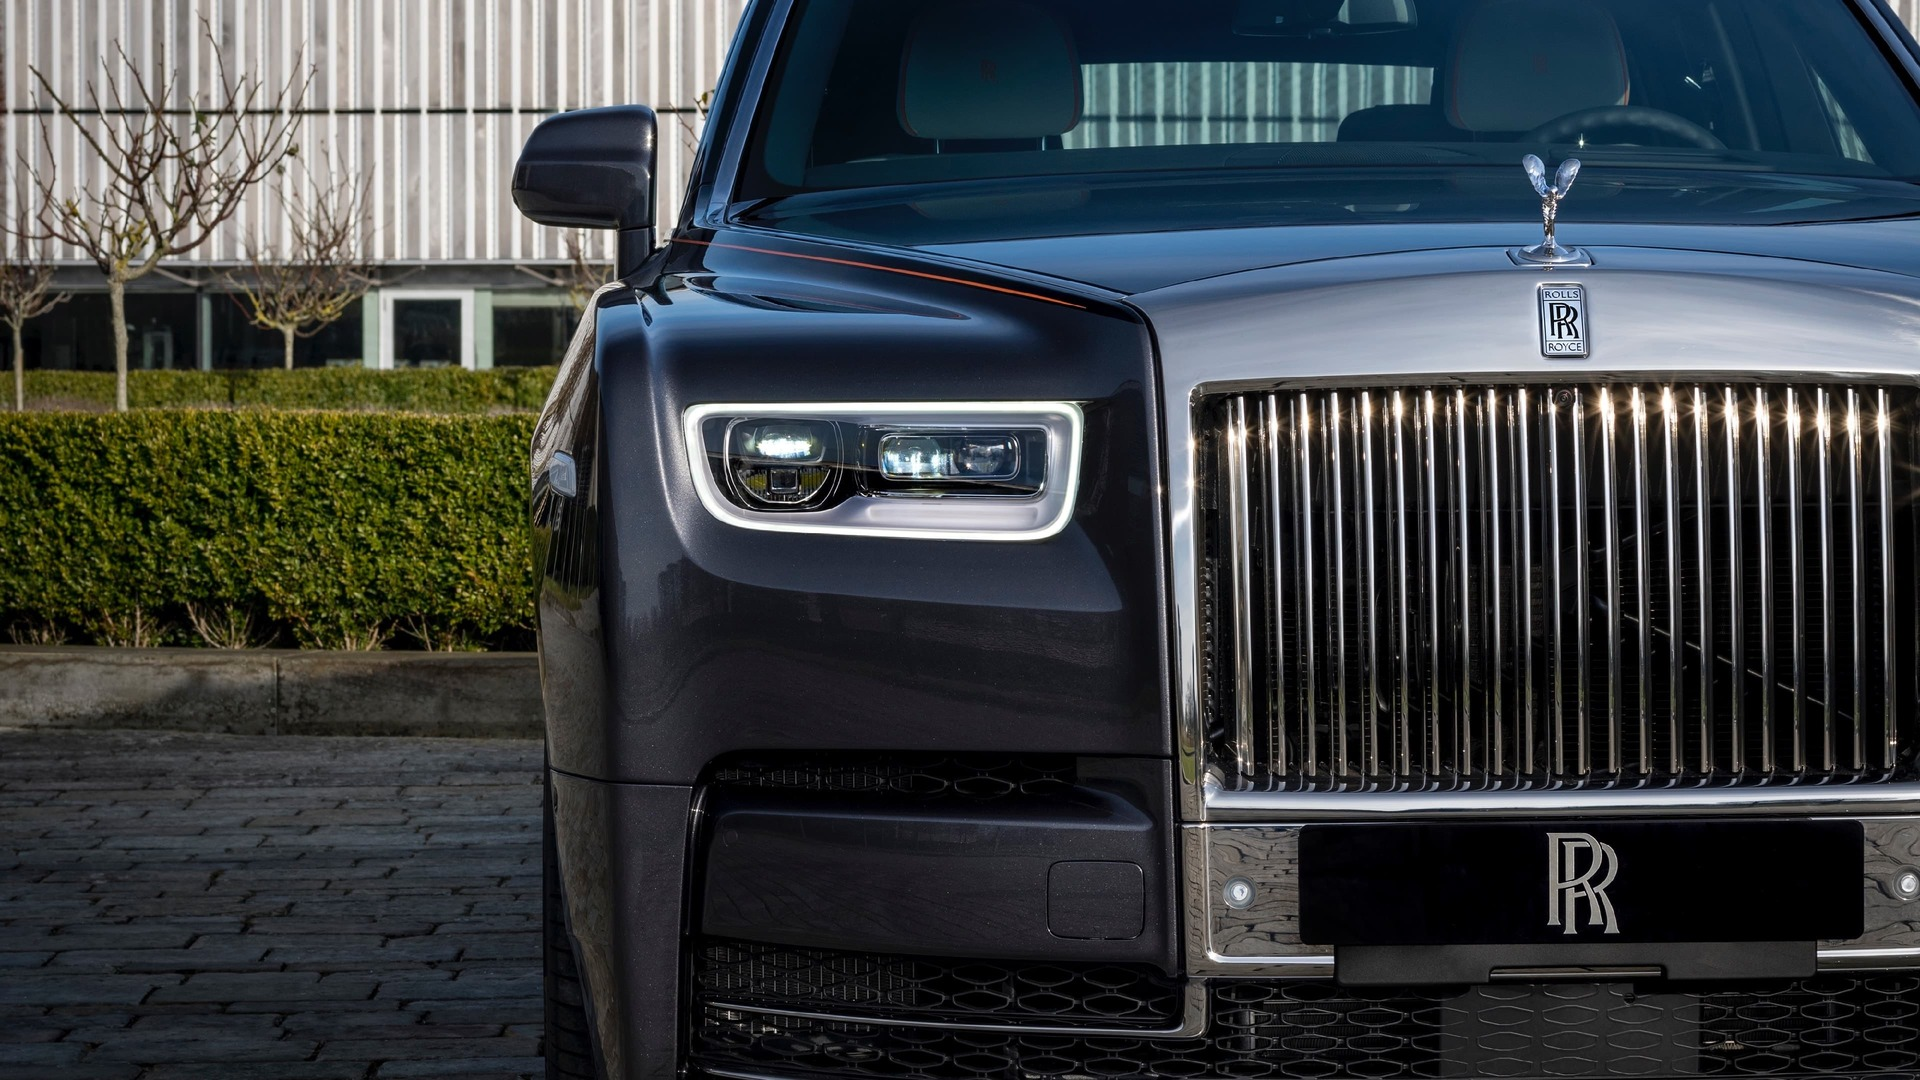 Front grille view of gunmetal Rolls-Royce Phantom standard wheelbase